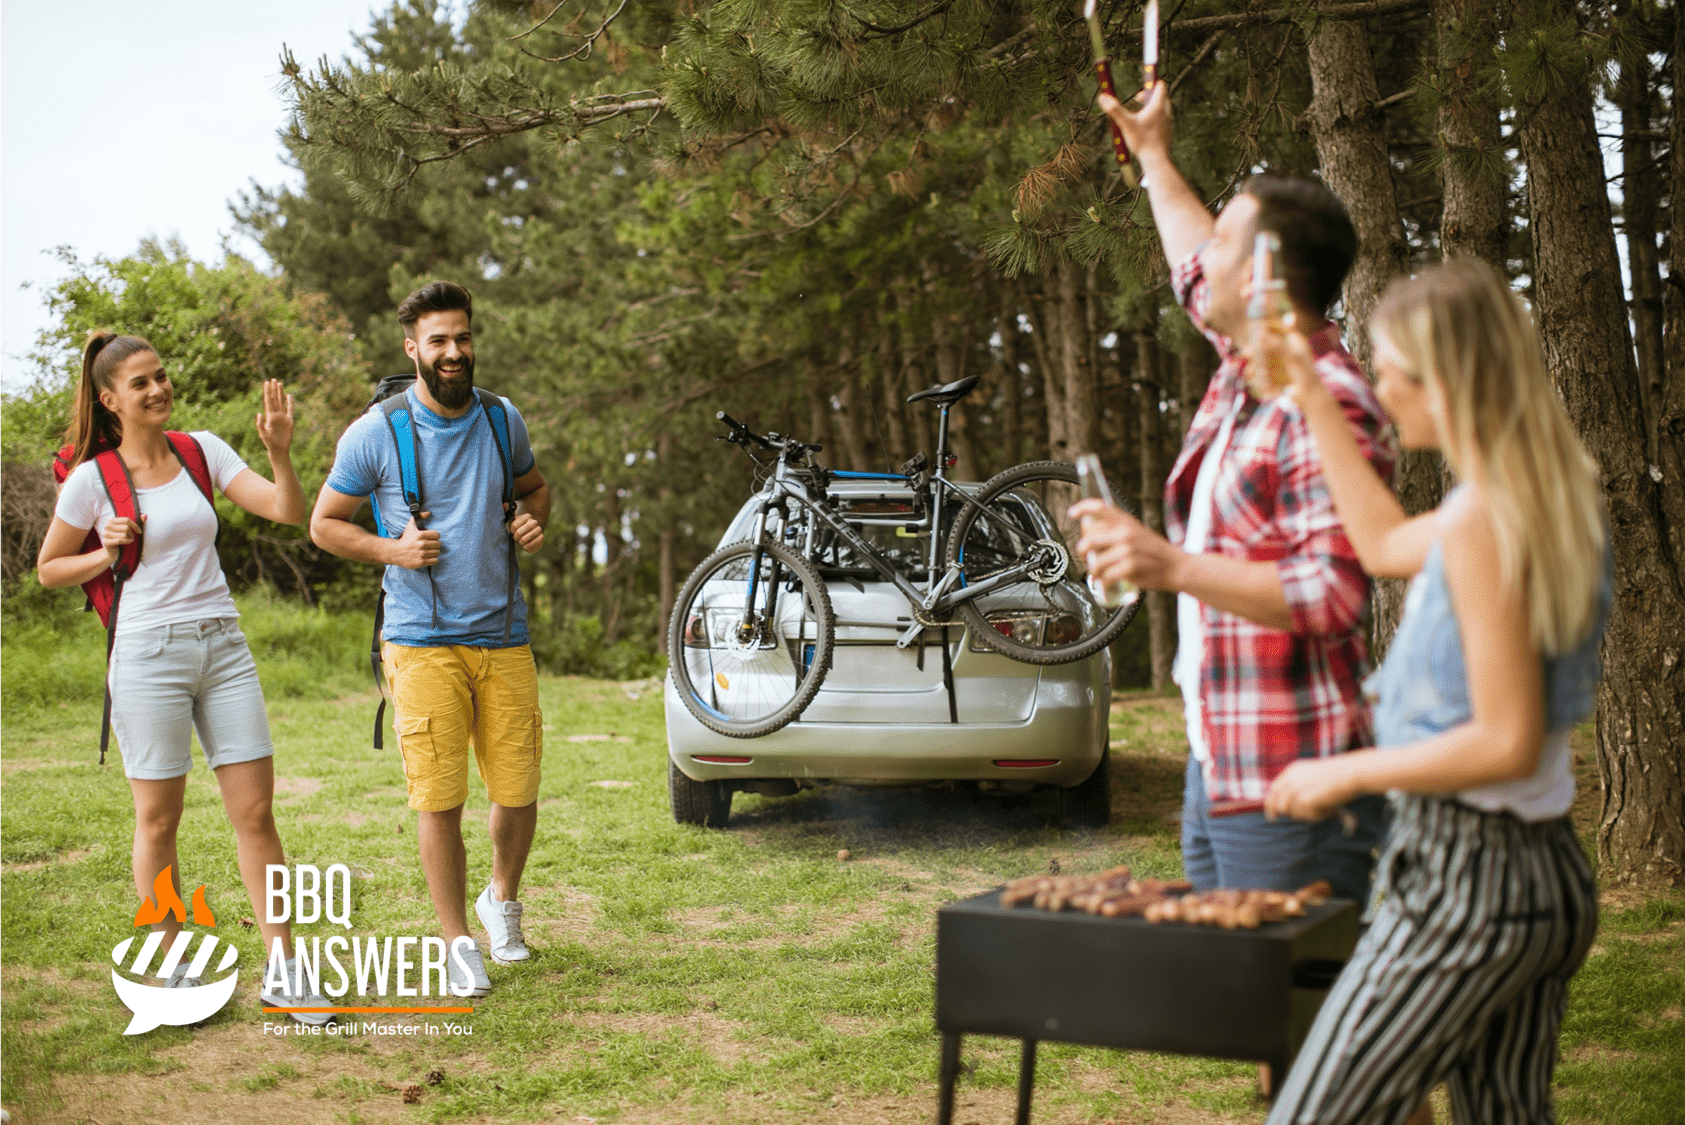 BBQ Tailgating Party 101 | BBQanswers